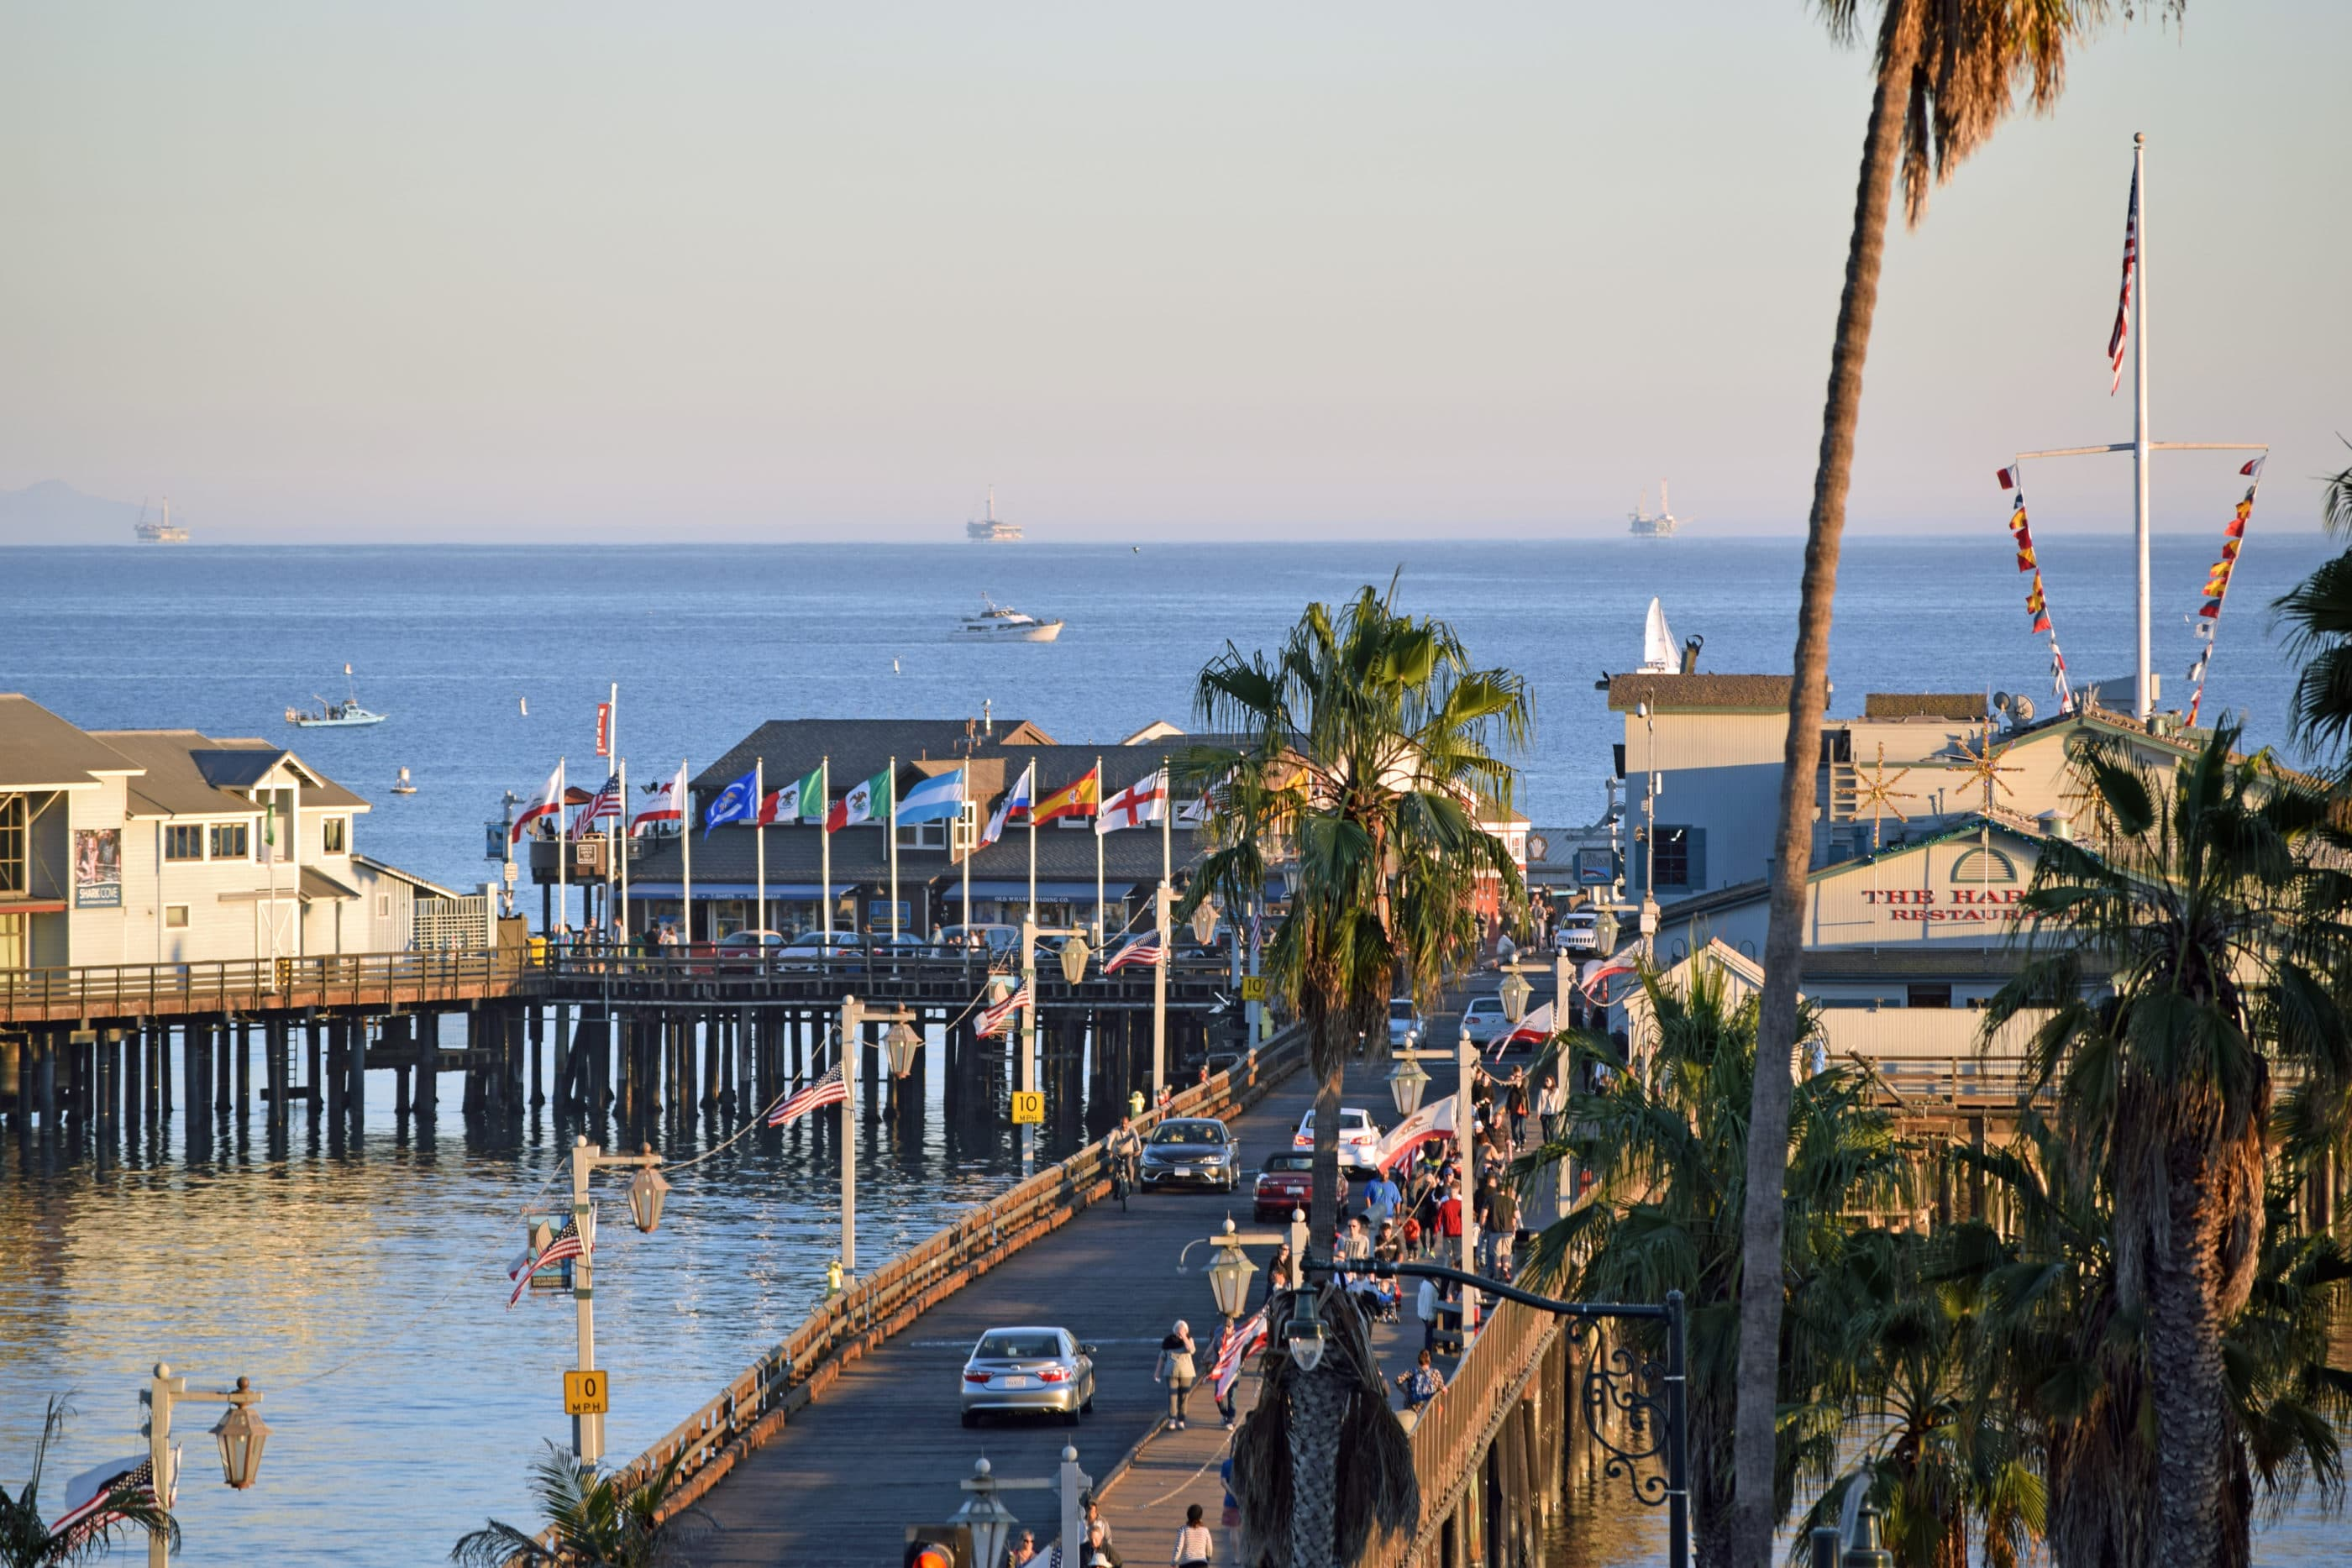 An aerial shot of cars driving down the Stearns Wharf pier in Santa Barbara.